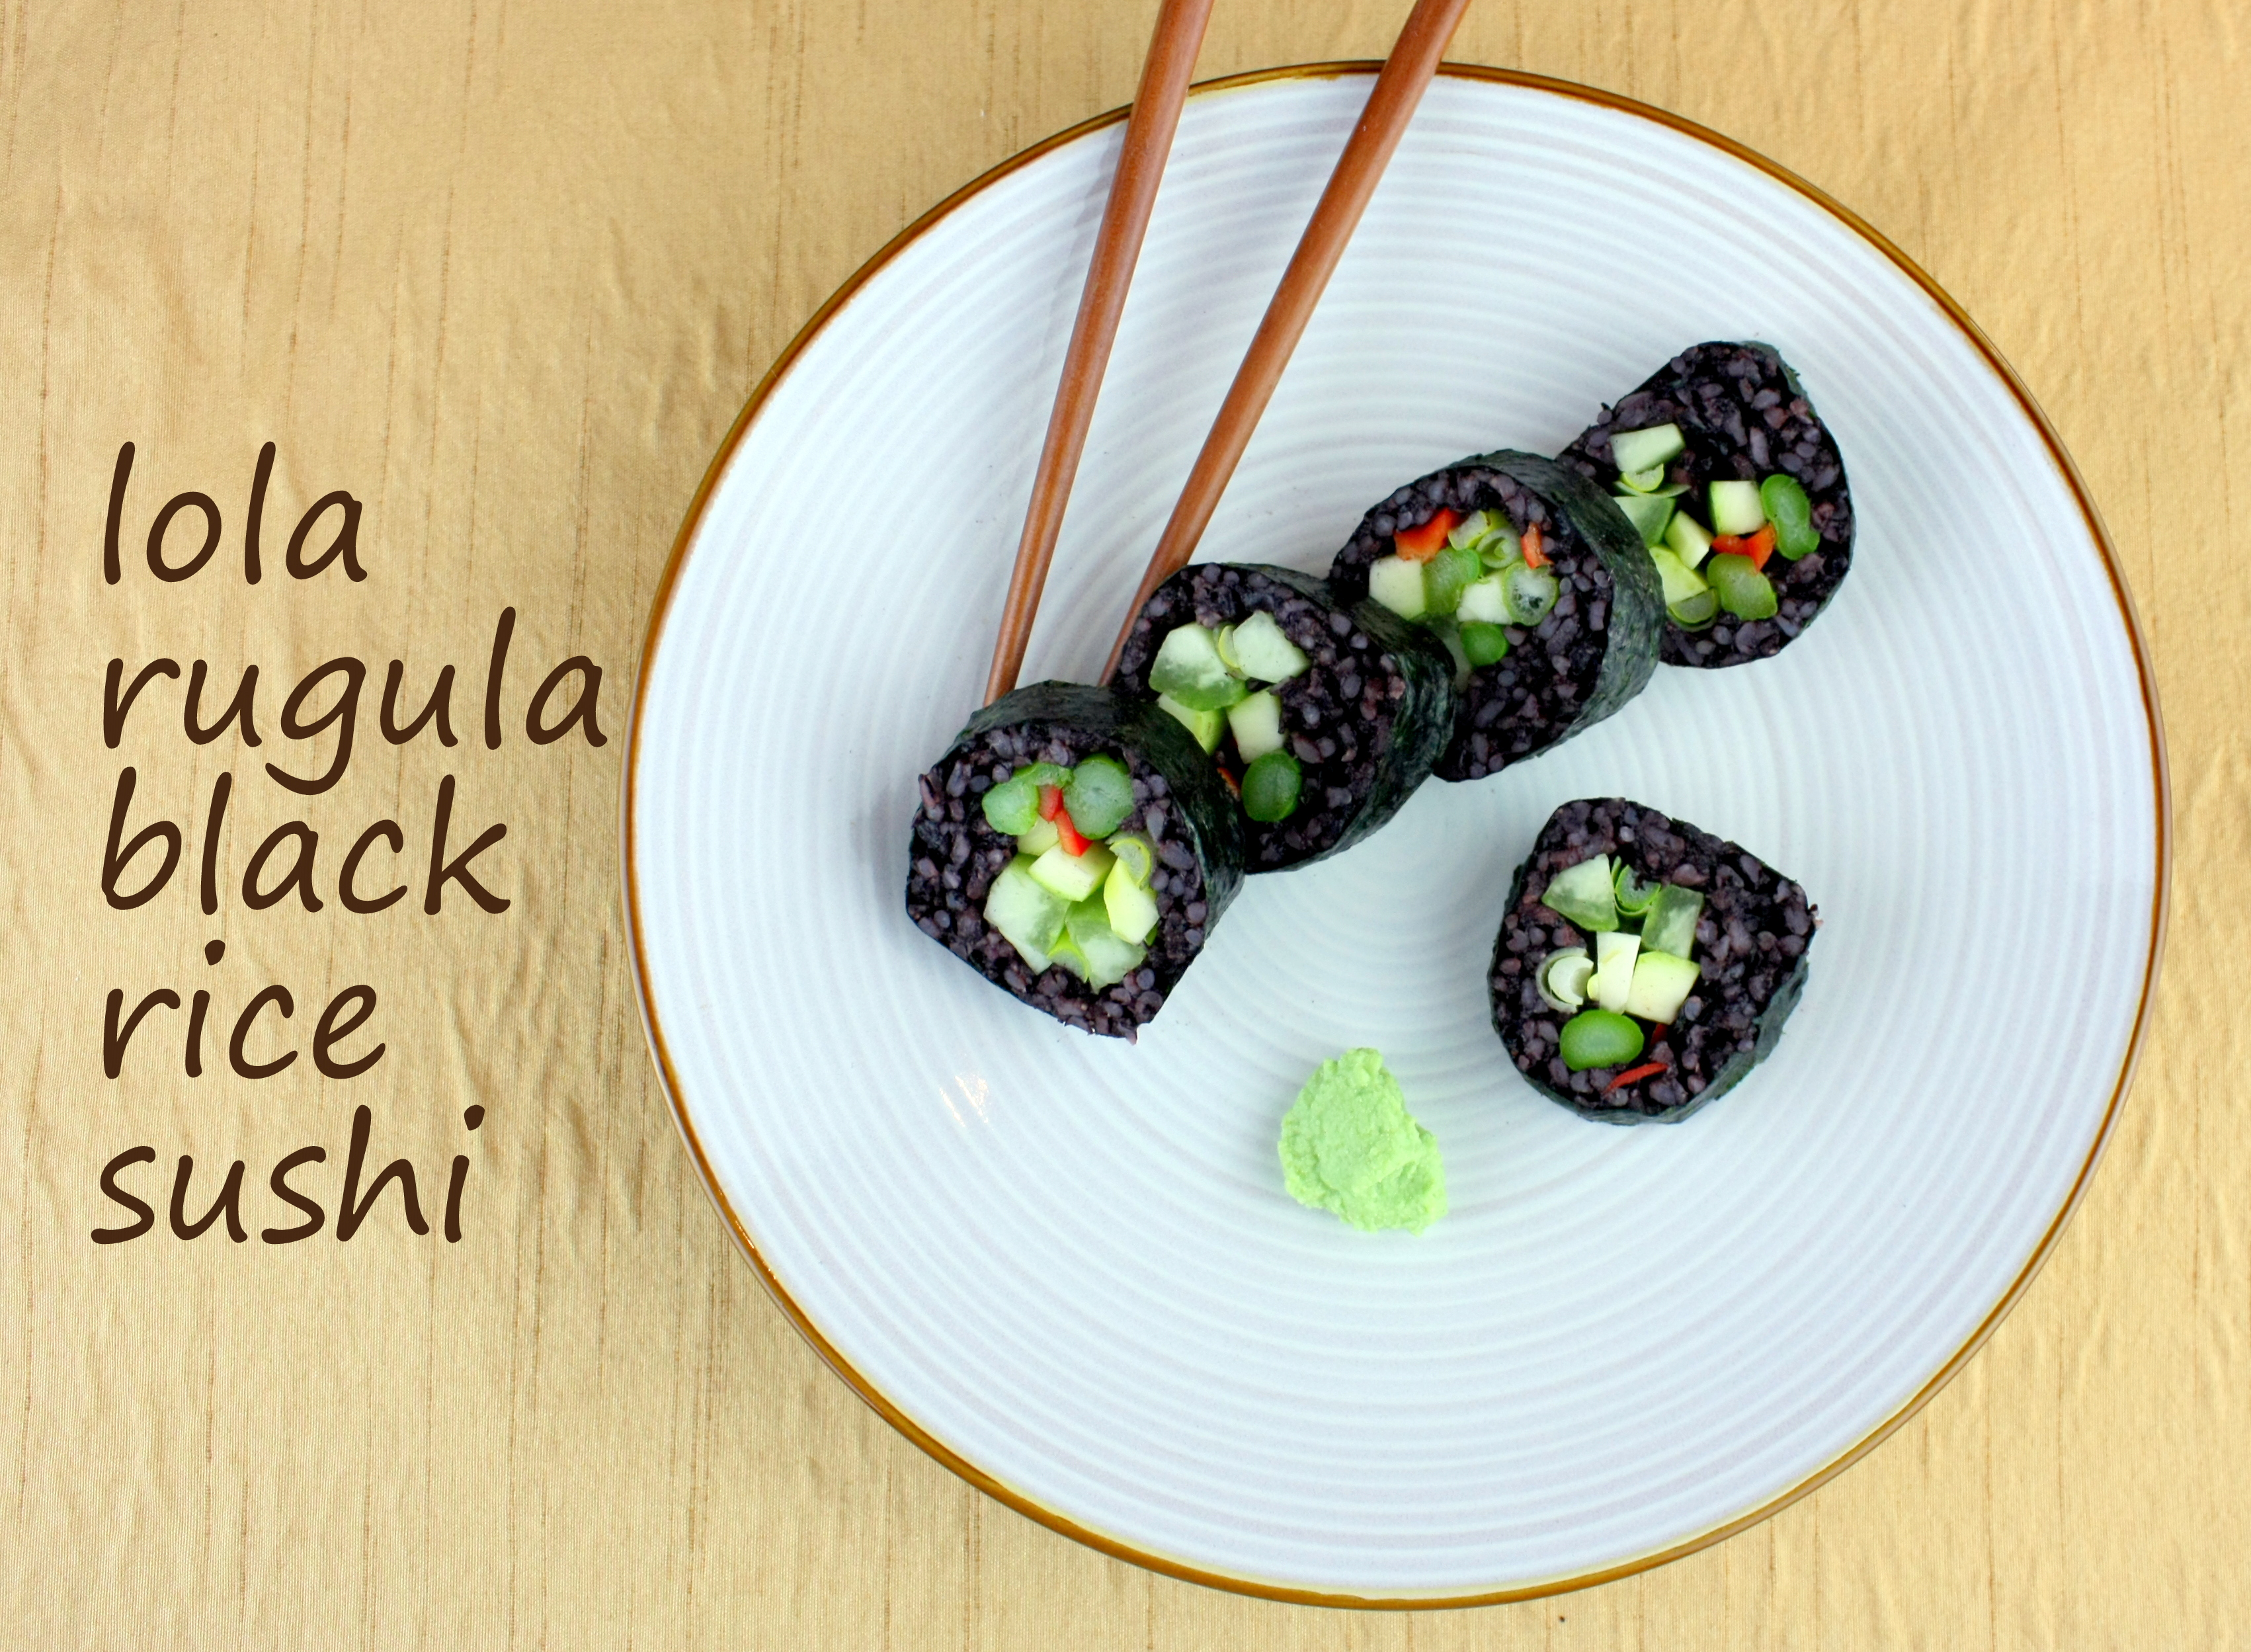 how to make black rice sticky for sushi